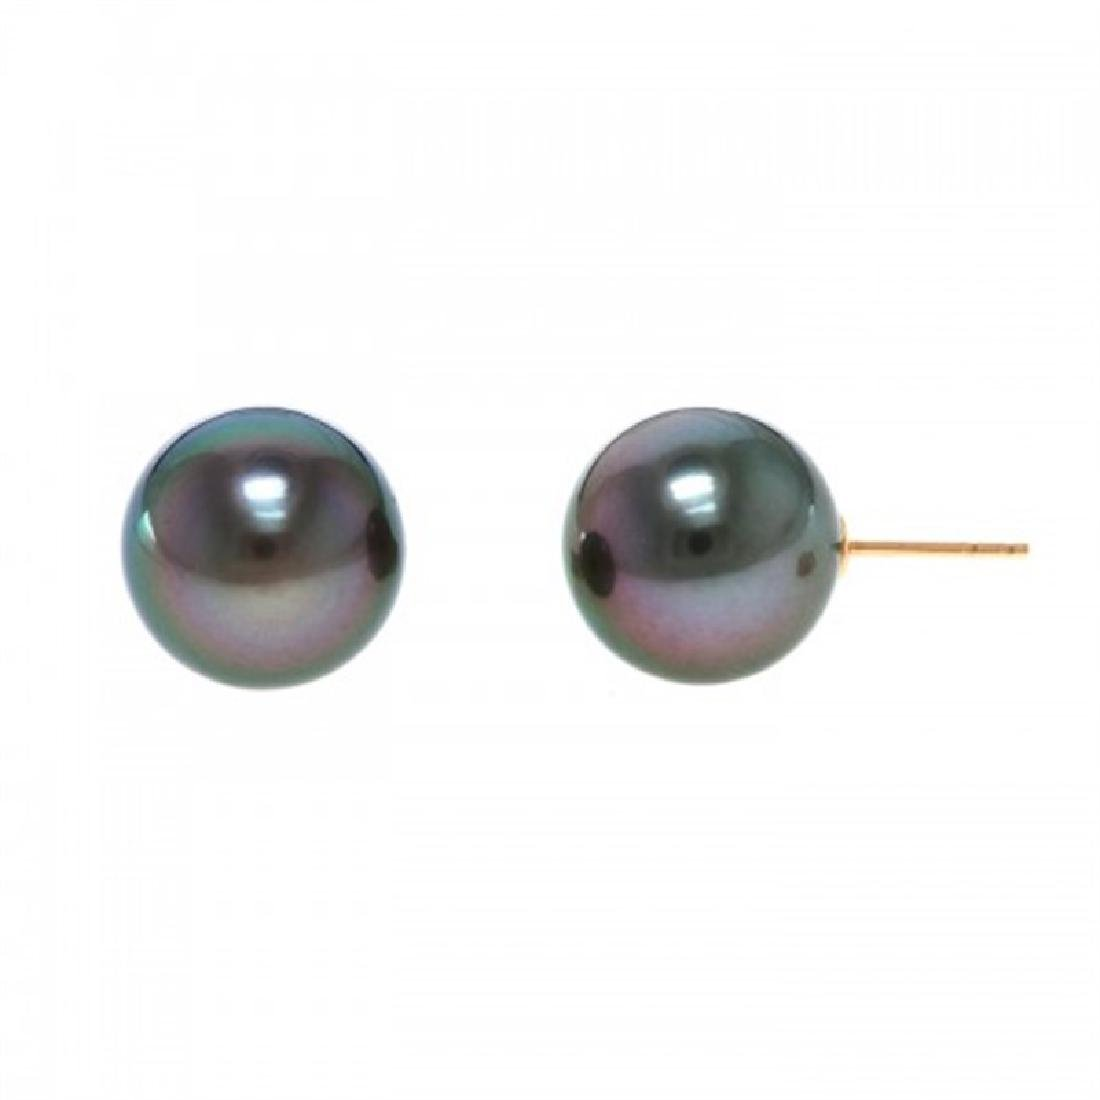 12.5-13.0mm Tahitian Black Pearl Stud Earrings